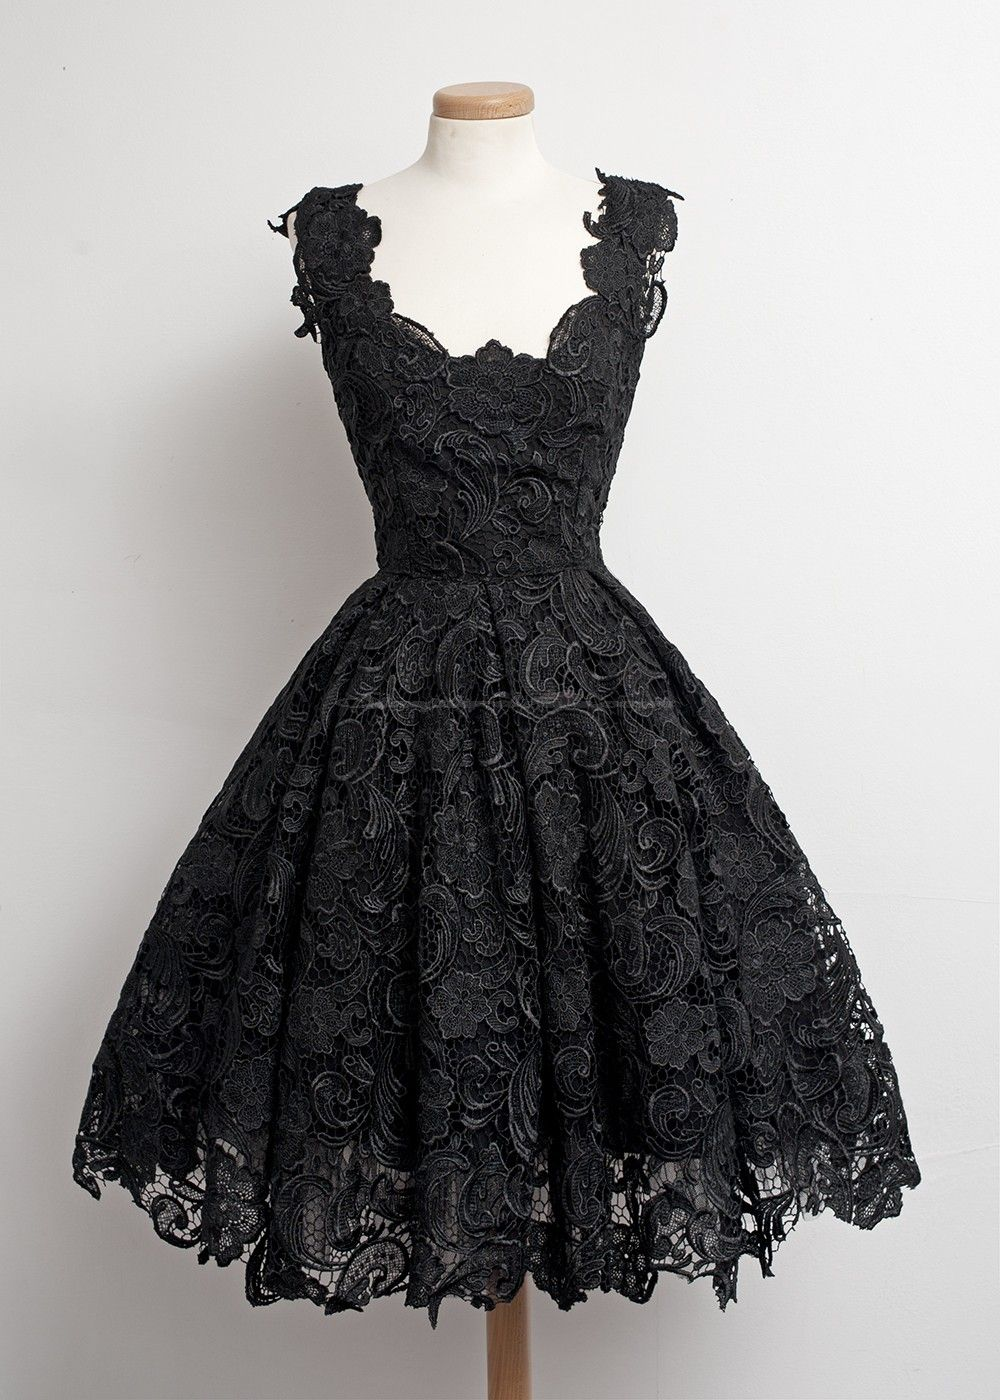 Simpledress s vintage little black lace prom dresseshomecoming